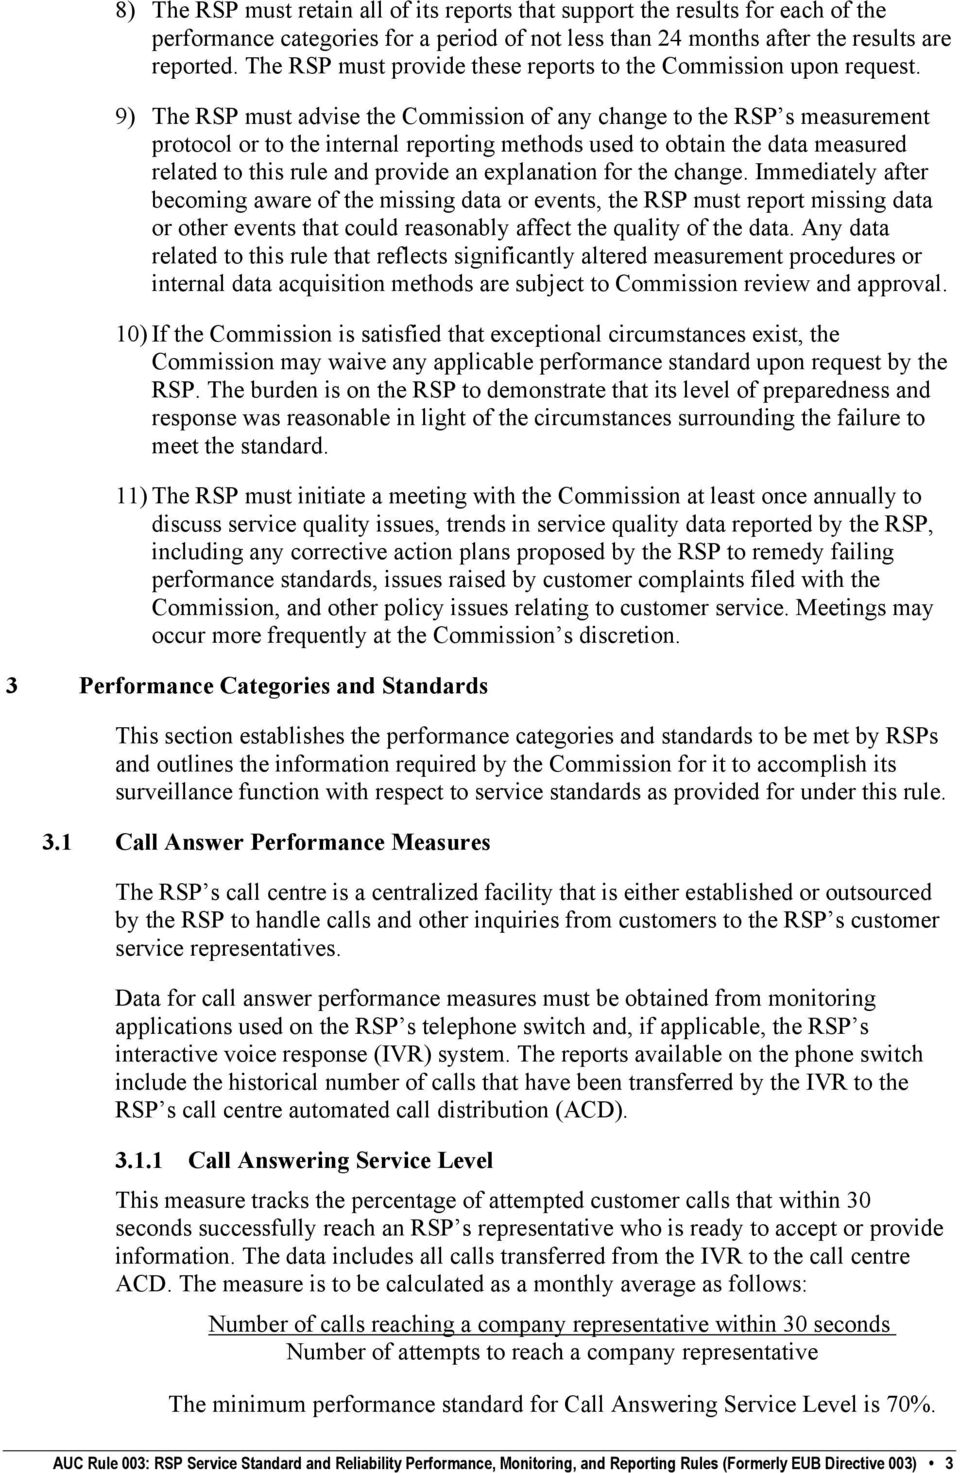 9) The RSP must advise the Commission of any change to the RSP s measurement protocol or to the internal reporting methods used to obtain the data measured related to this rule and provide an